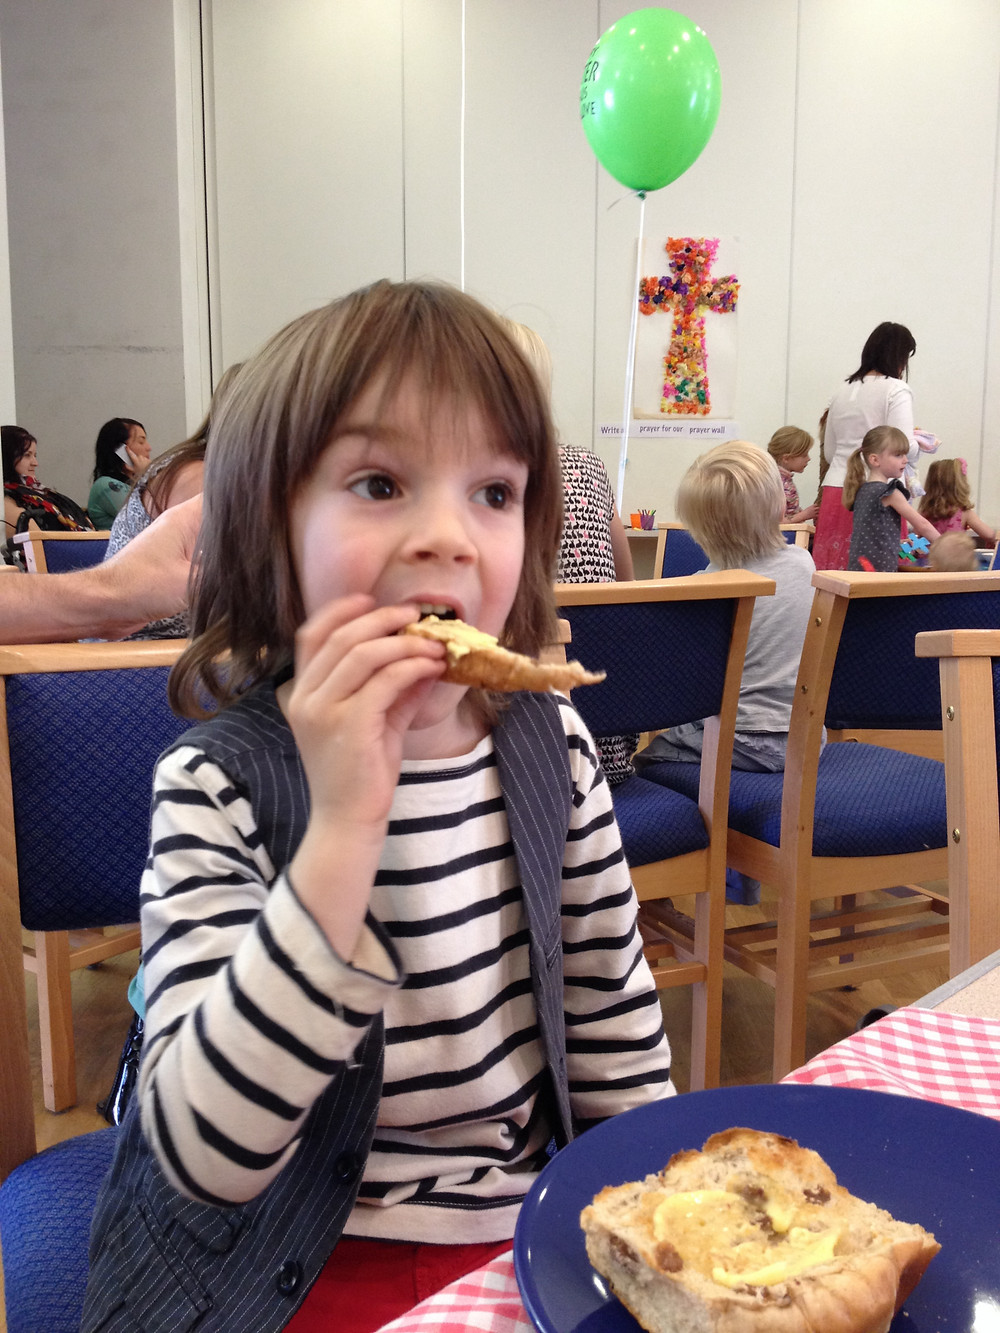 Child eating hot cross bun